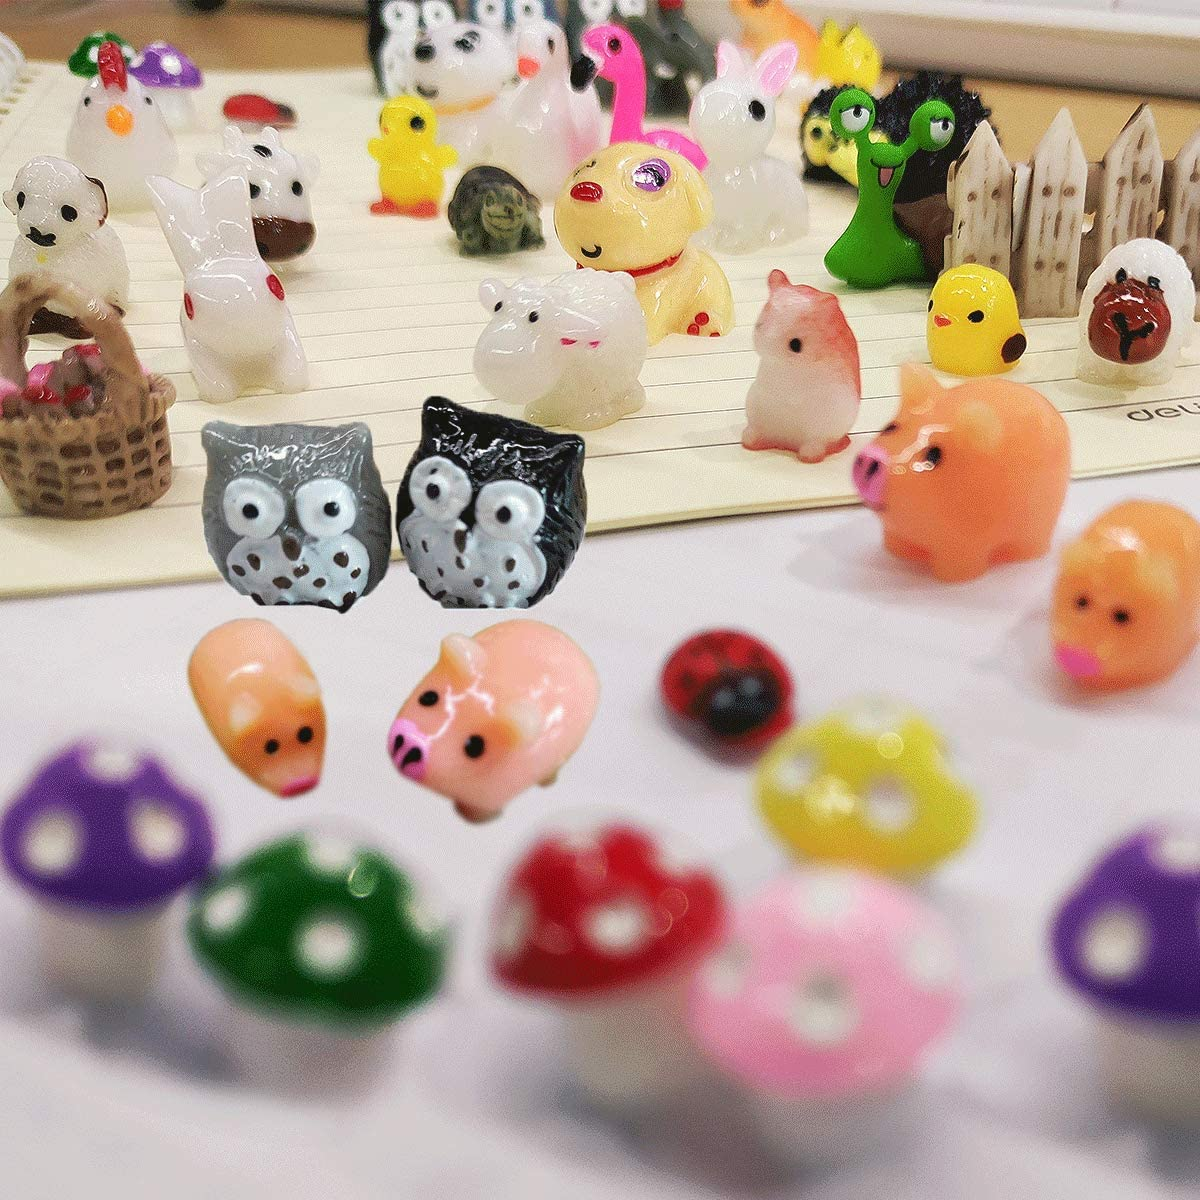 70 Pieces Mini Animals My Fairy Garden Fairy Garden Accessories, Outdoor Fairy House Accessories for DIY, Mini Animal Model Decorative Moss Miniature Ornament Kit Best Gifts Party Gifts